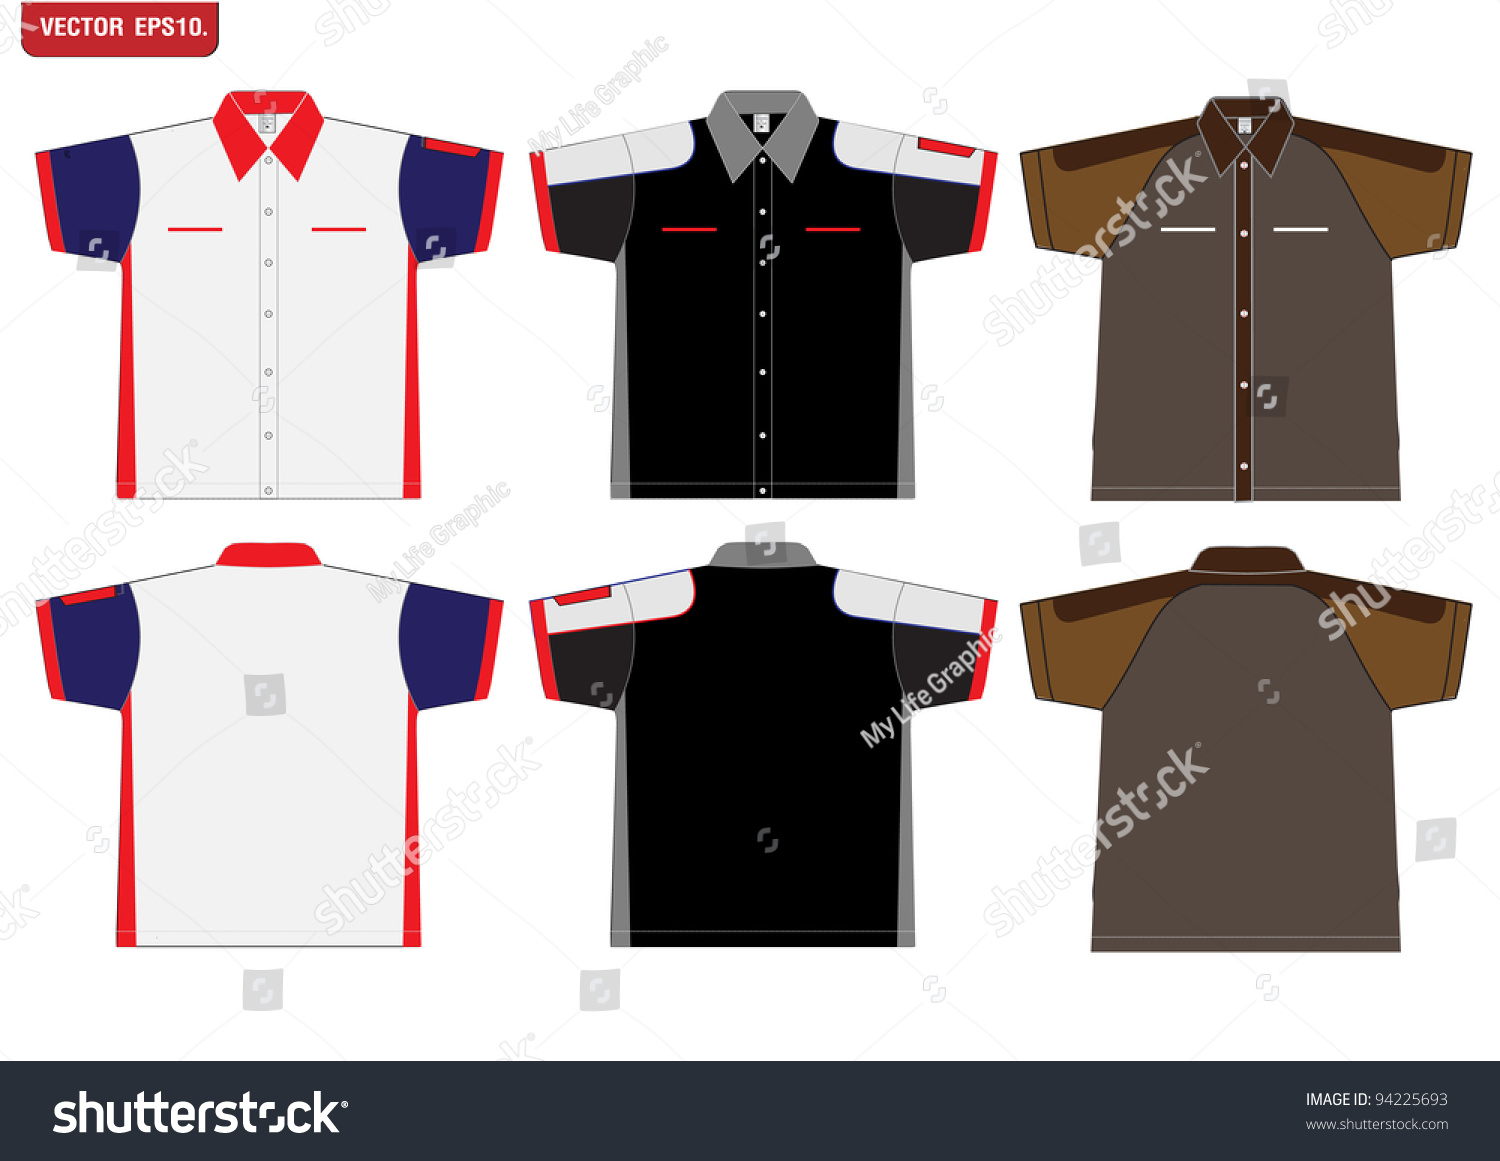 T shirt design vector template front and back view for Shutterstock t shirt design